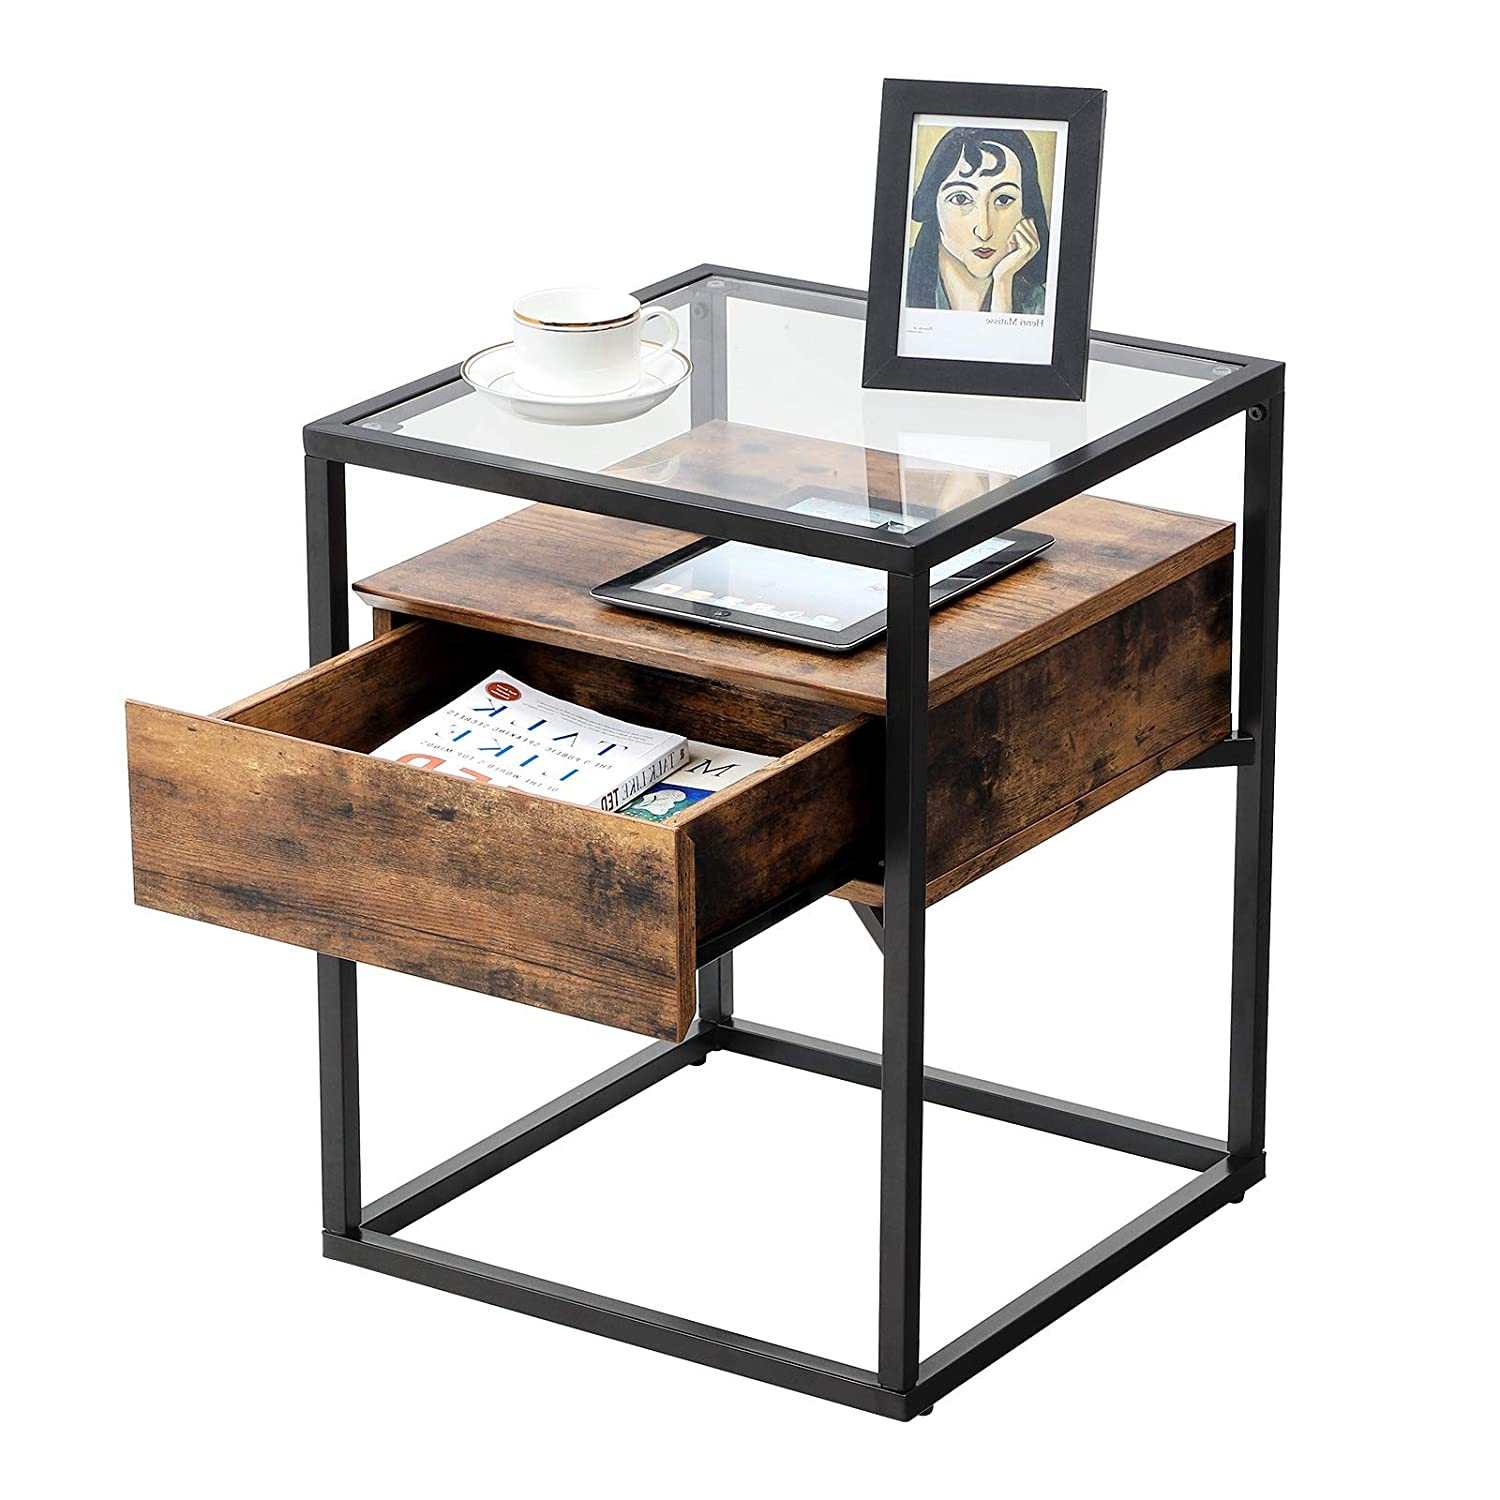 VASAGLE Industrial Side Table, Tempered Glass End Table, with Drawer and Rustic Shelf, Decoration in Living Room, Lounge, Foyer, Stable Iron Frame ULET04BX